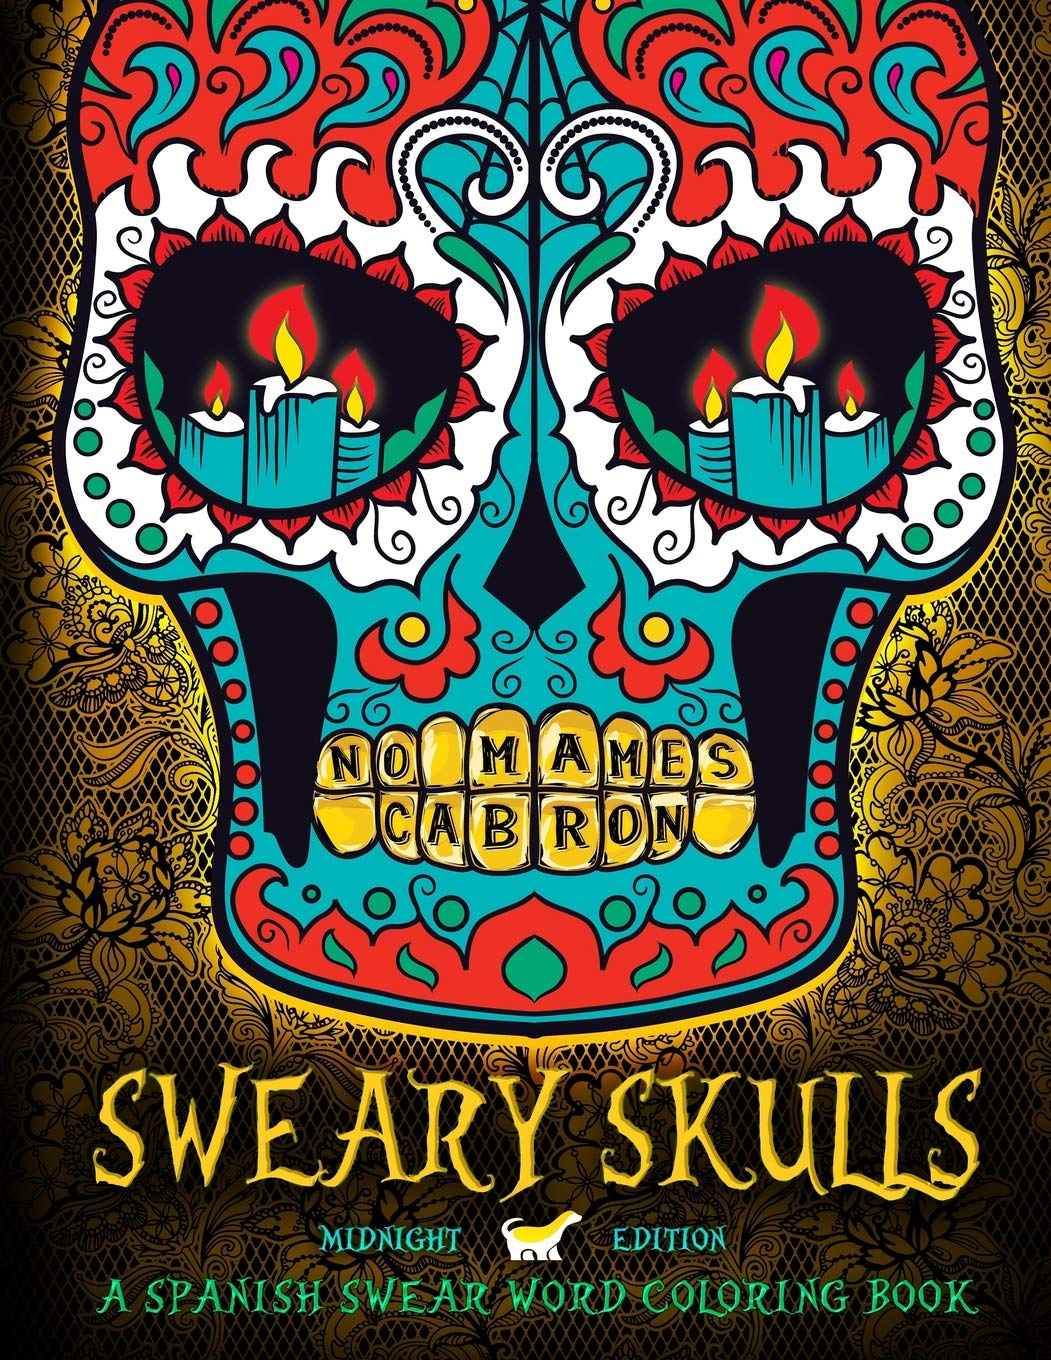 Amazon.com: Sweary Skulls: A Spanish Swear Word Coloring Book ...